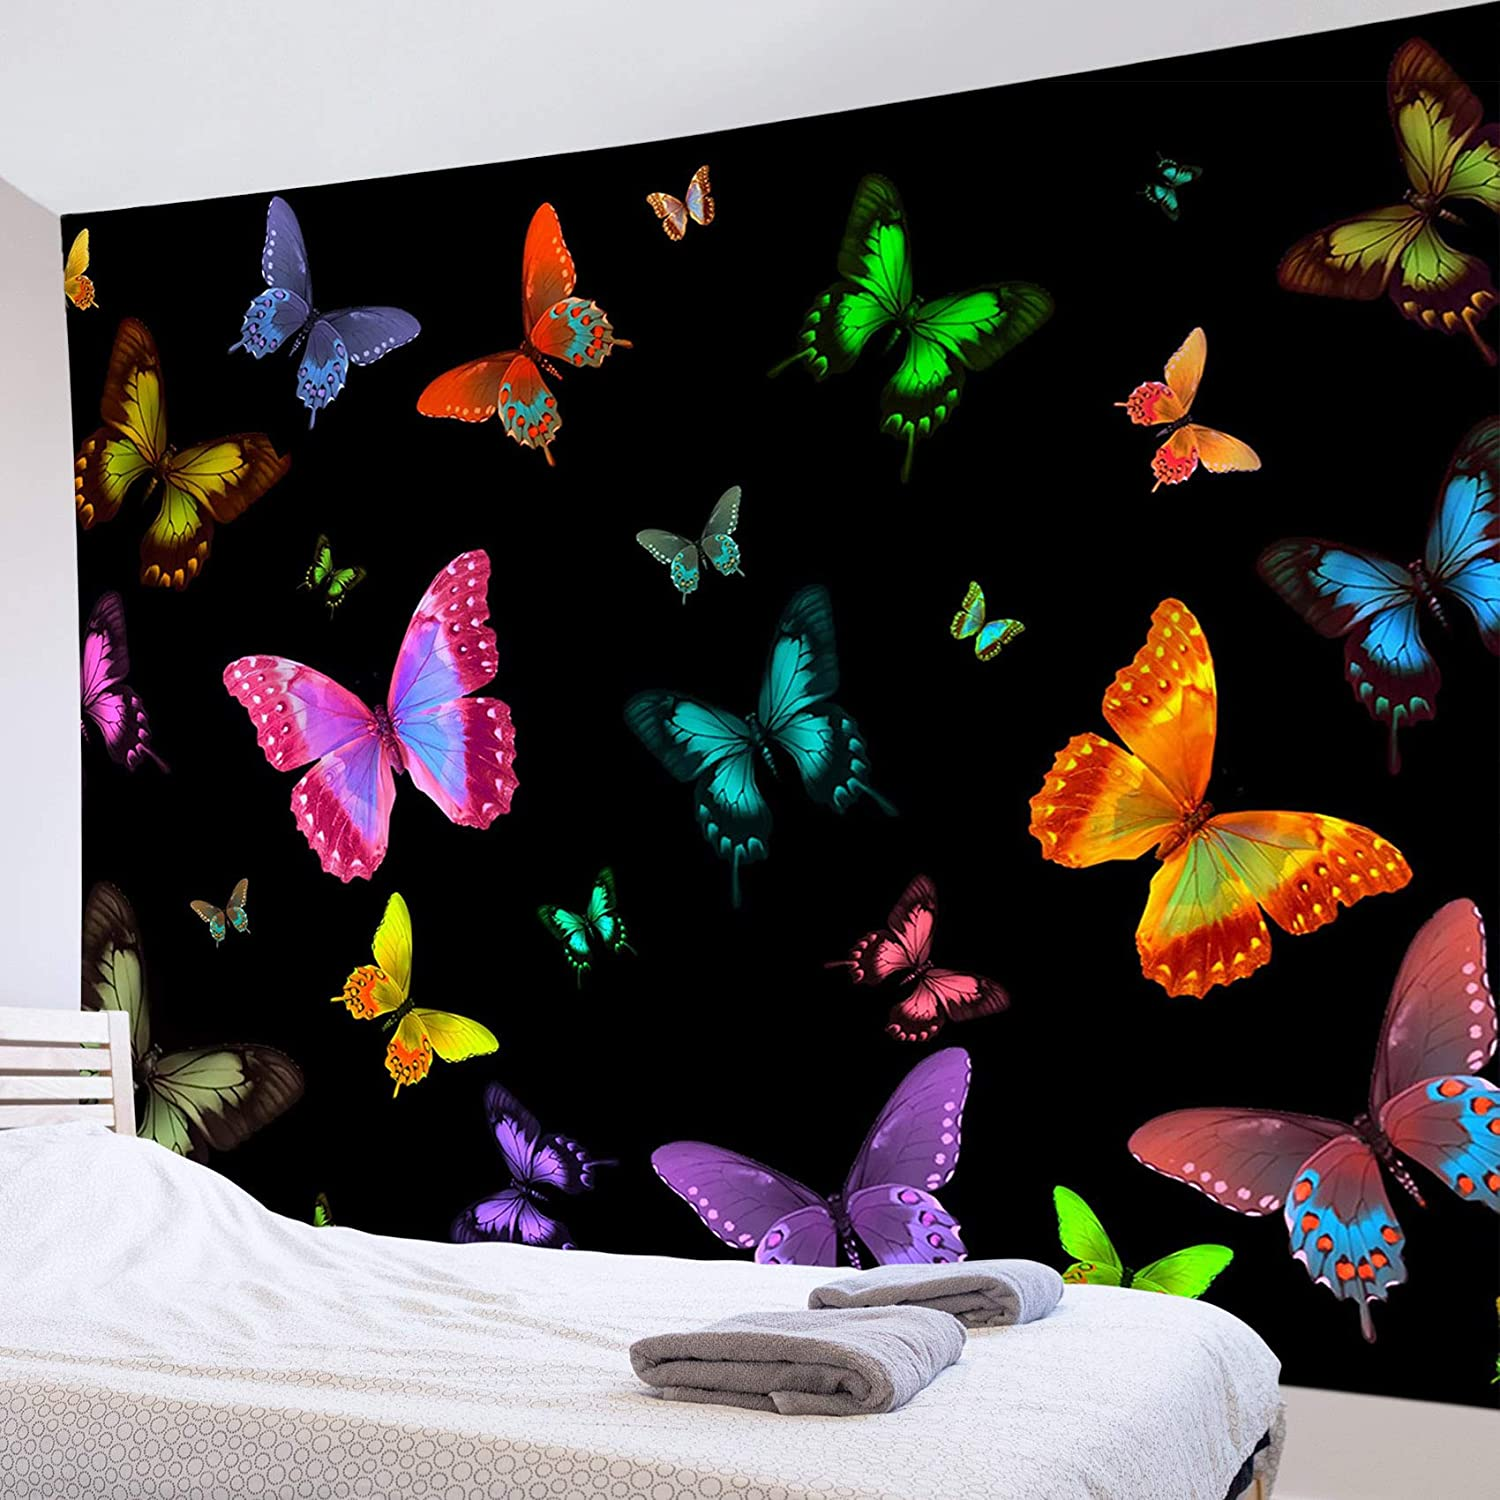 Trippy Butterfly Tapestry Wall Hanging Black Psychedelic Aesthetic Tapestry Blanket Colorful Moth Insect Wall Decor Wall Art for Teen Girls Living Room Bedroom College Dorm 60W x 40H